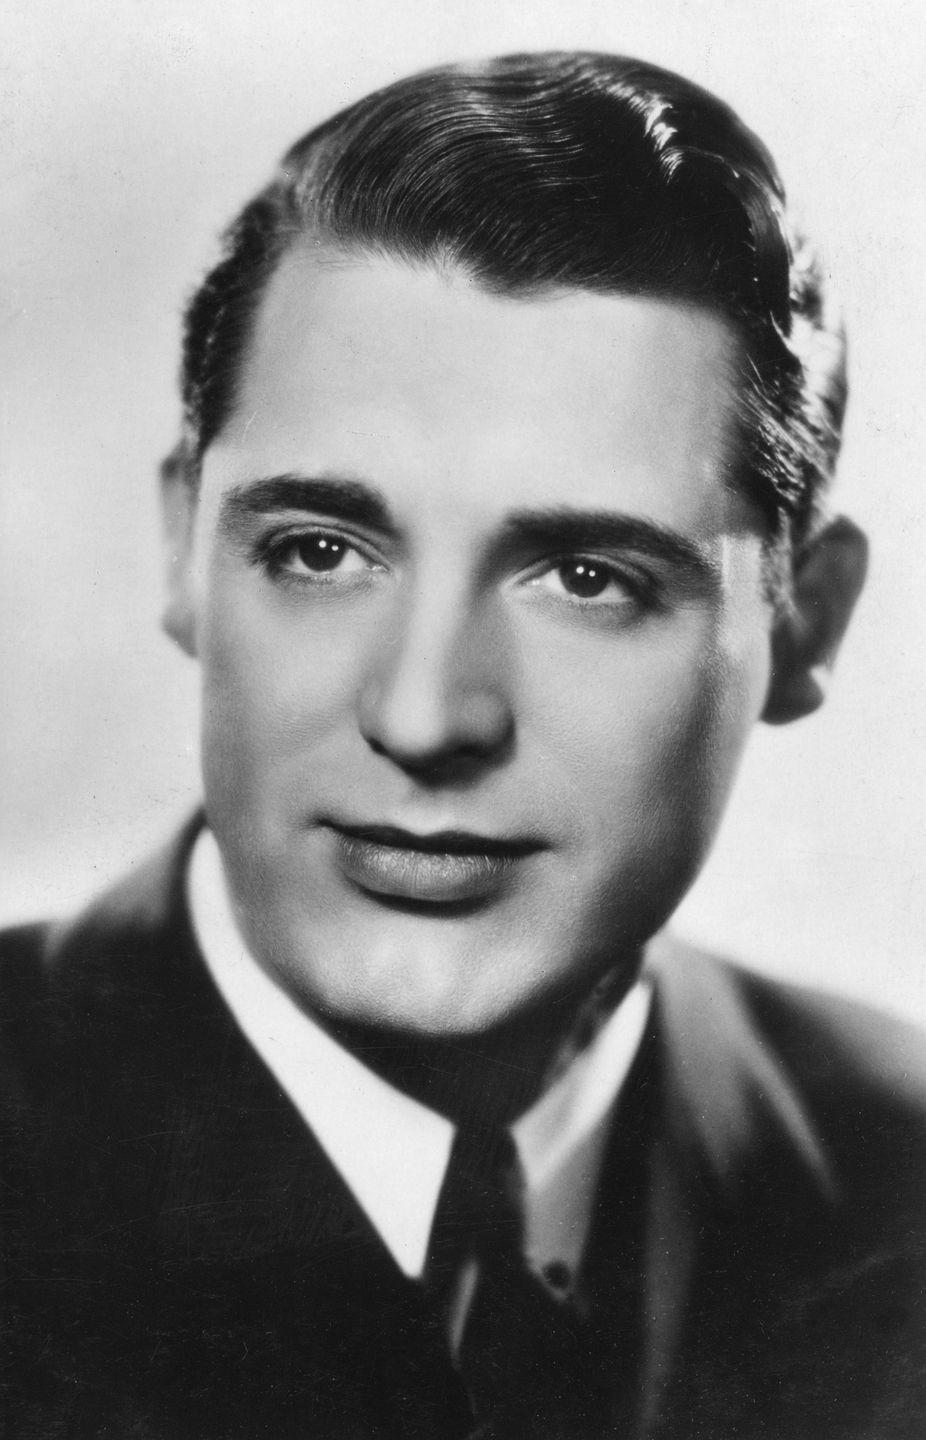 <p>After screen testing at Paramount Pictures, the studio signed Grant to a five-year contract with a starting salary of $450 a week.</p>